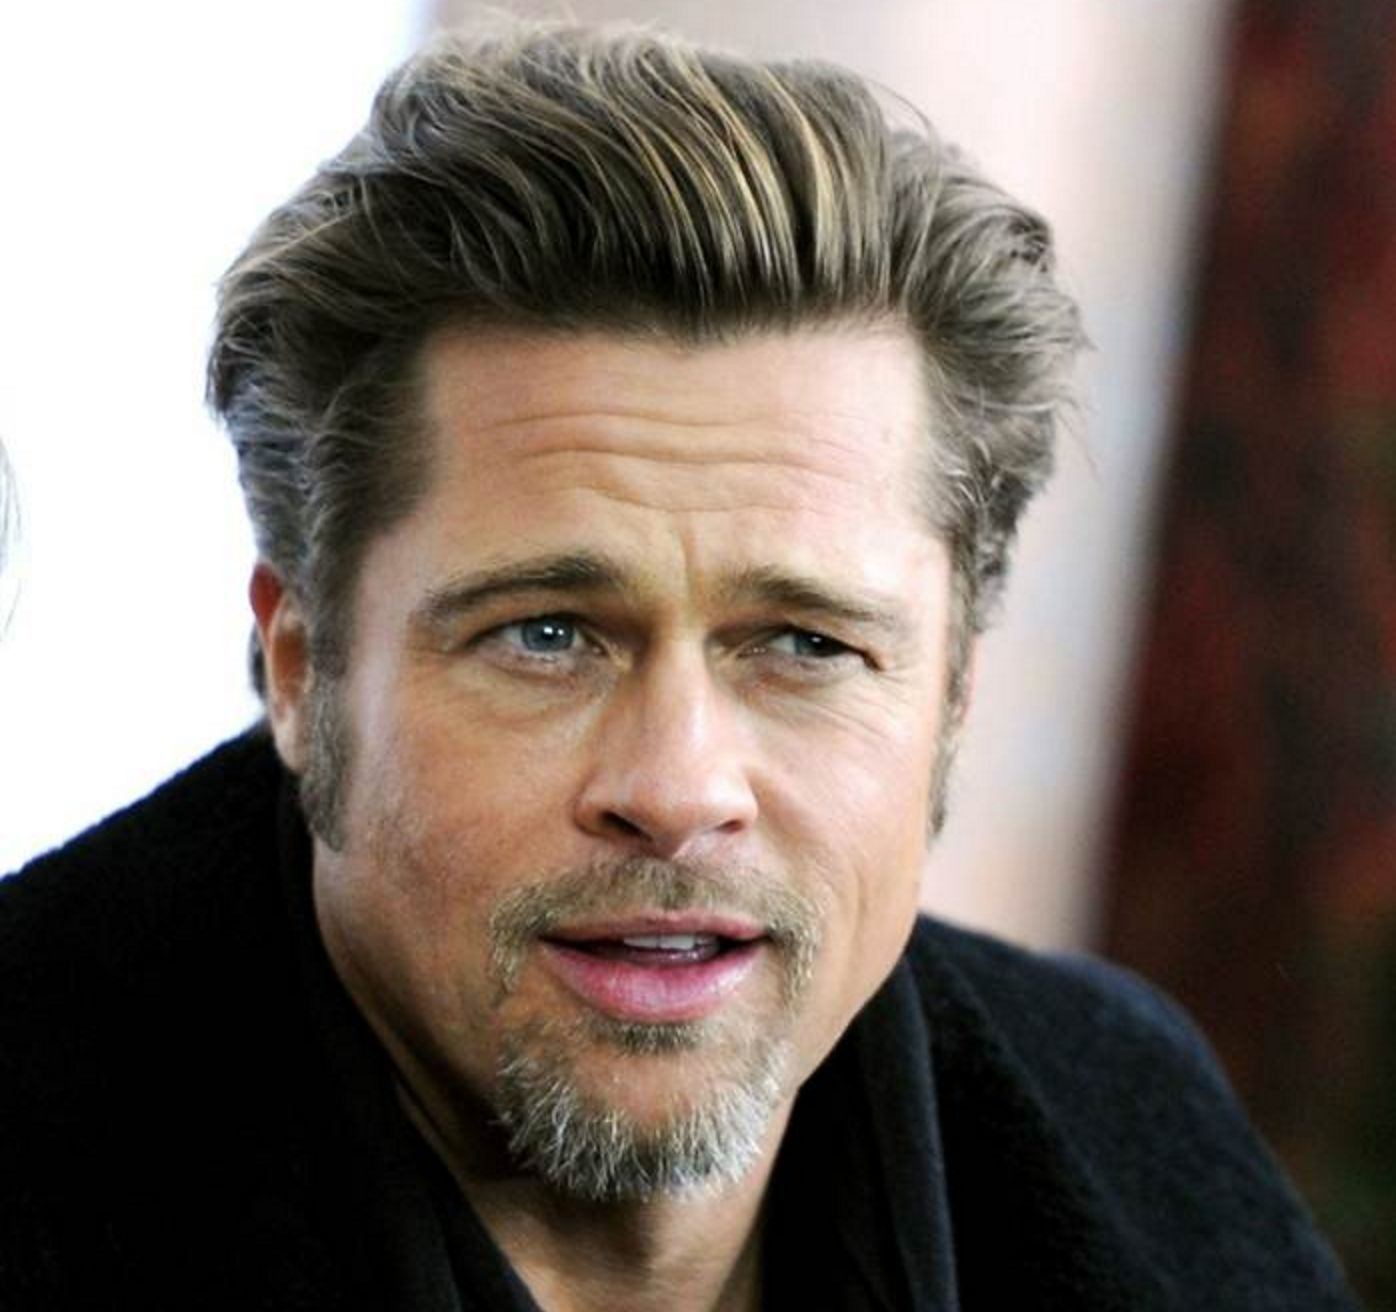 brad-pitt-doesn-t-really-look-much-like-brad-pitt-in-these-photos-727400